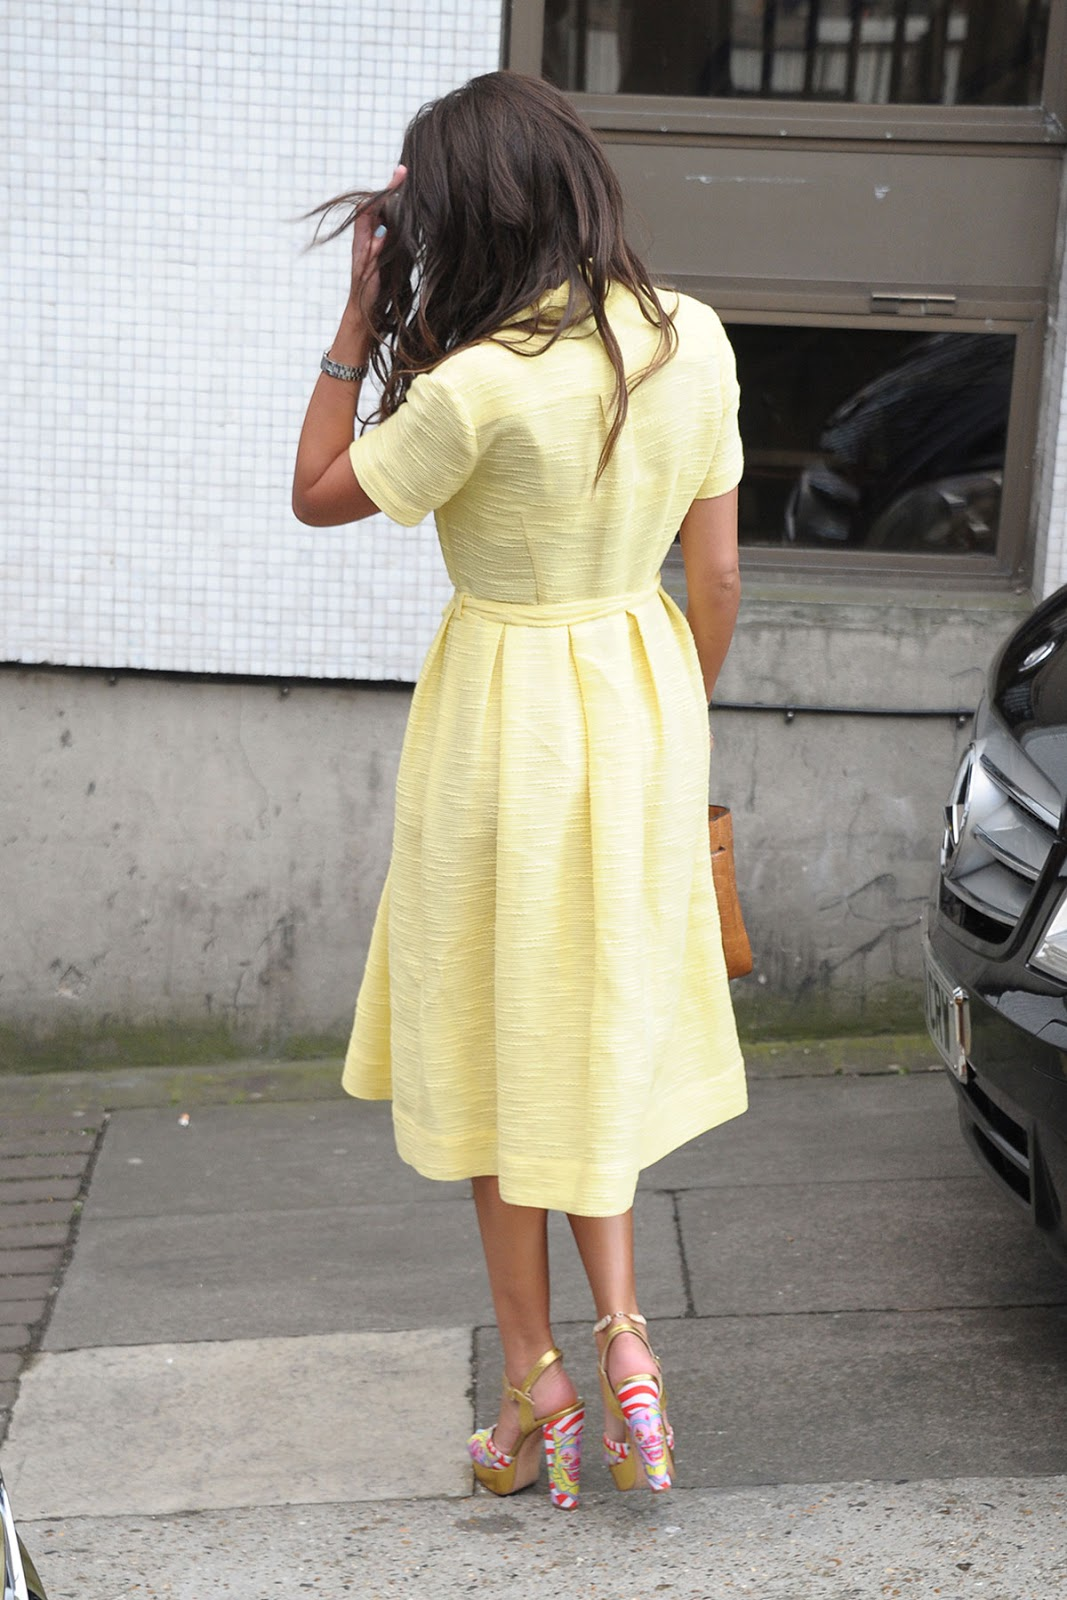 HQ Photos of Michelle Keegan in Yellow glowing dress Arrives At ITV Studios In London